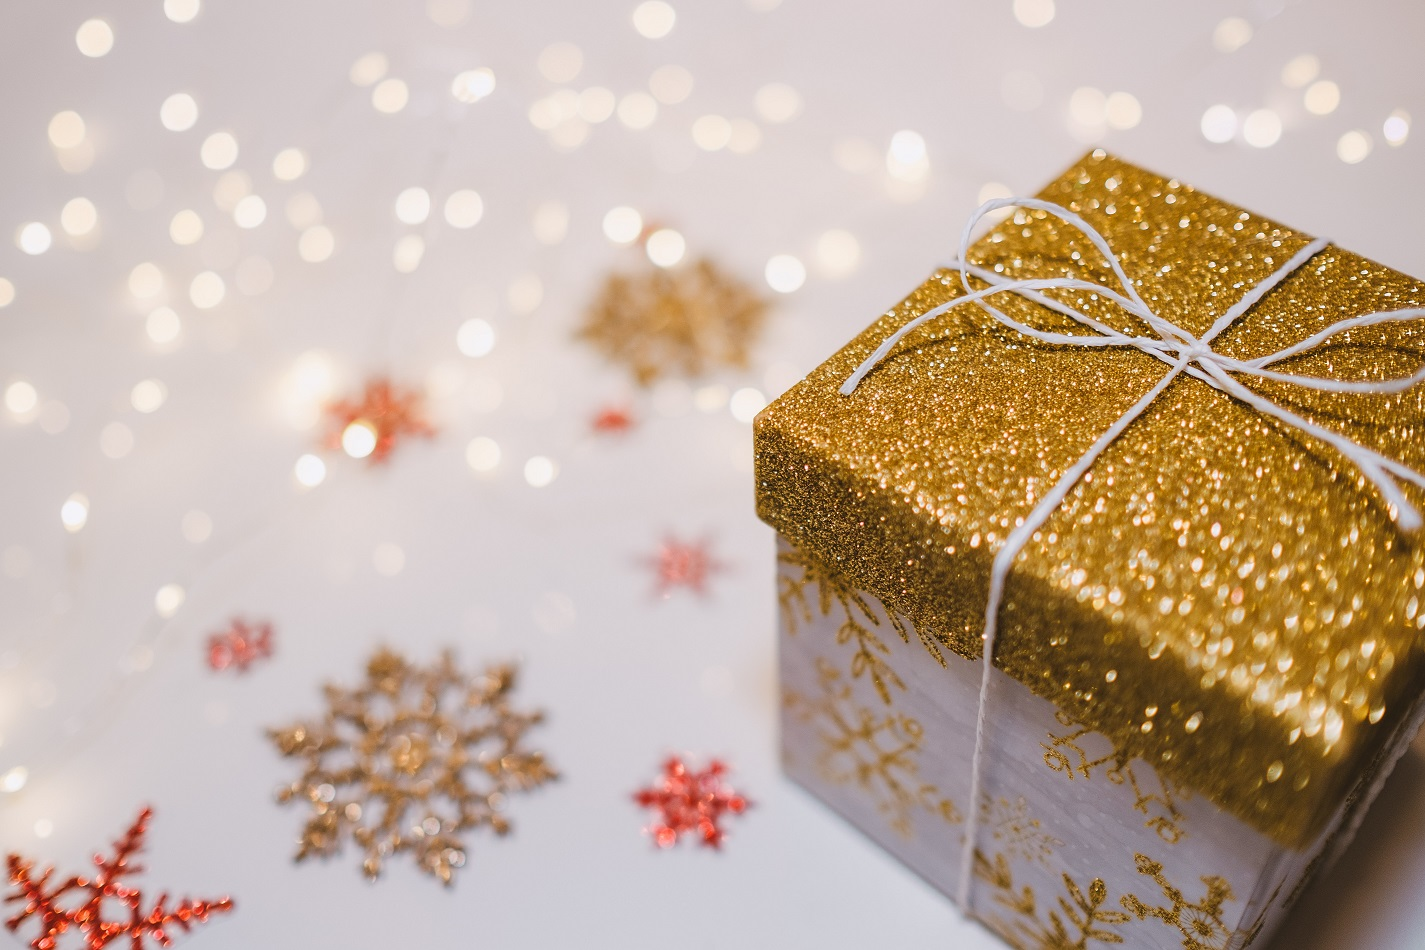 10 opportunities to give your student income a boost over Christmas